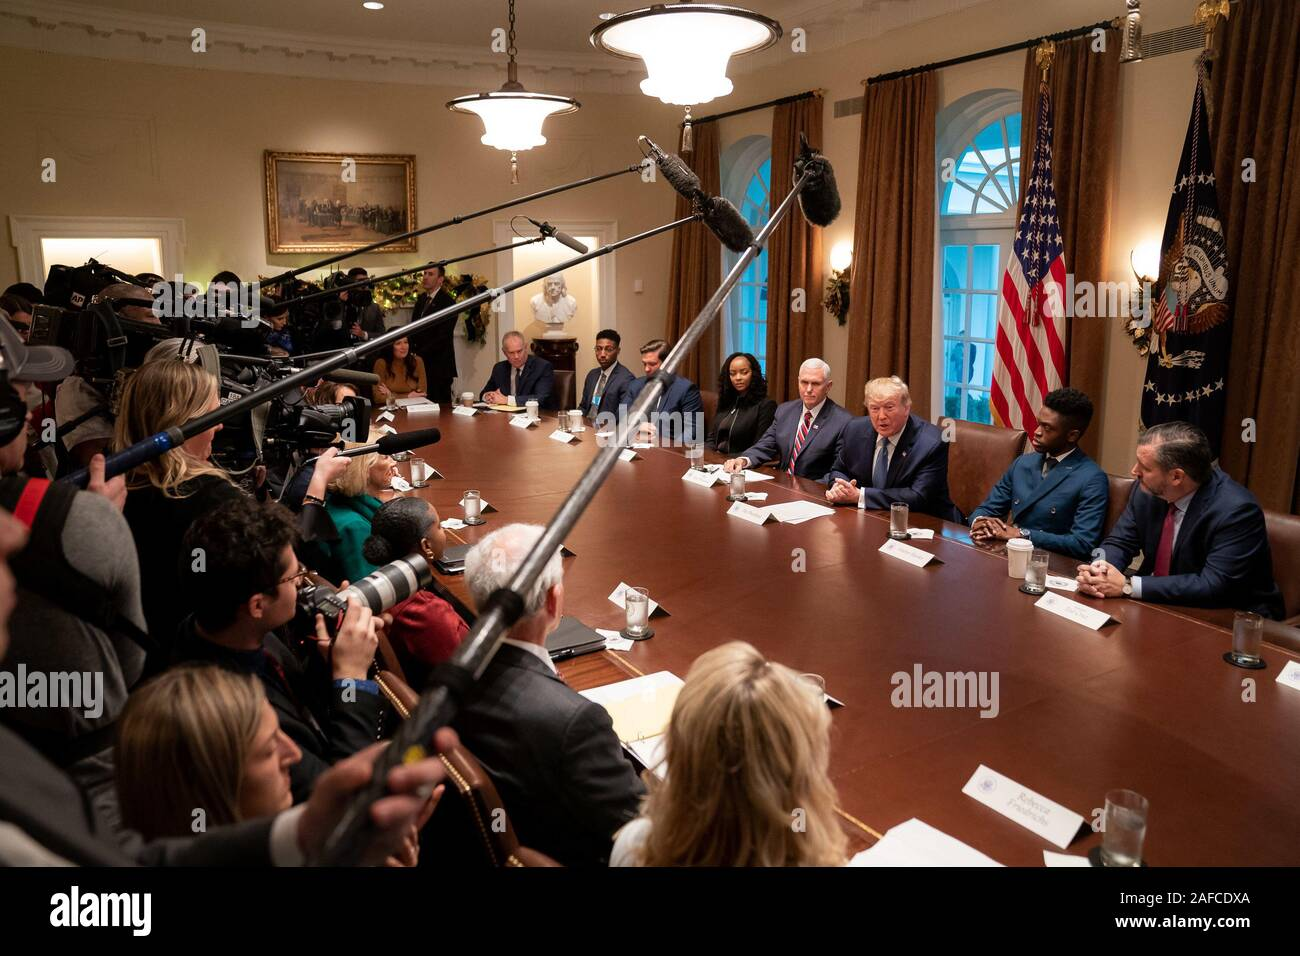 Washington, United States Of America. 09th Dec, 2019. President Donald J. Trump, joined by Vice President Mike Pence, delivers remarks at a roundtable on empowering families with education choice Monday, Dec. 9, 2019, in the Cabinet Room of the White House. People: President Donald Trump Credit: Storms Media Group/Alamy Live News Stock Photo